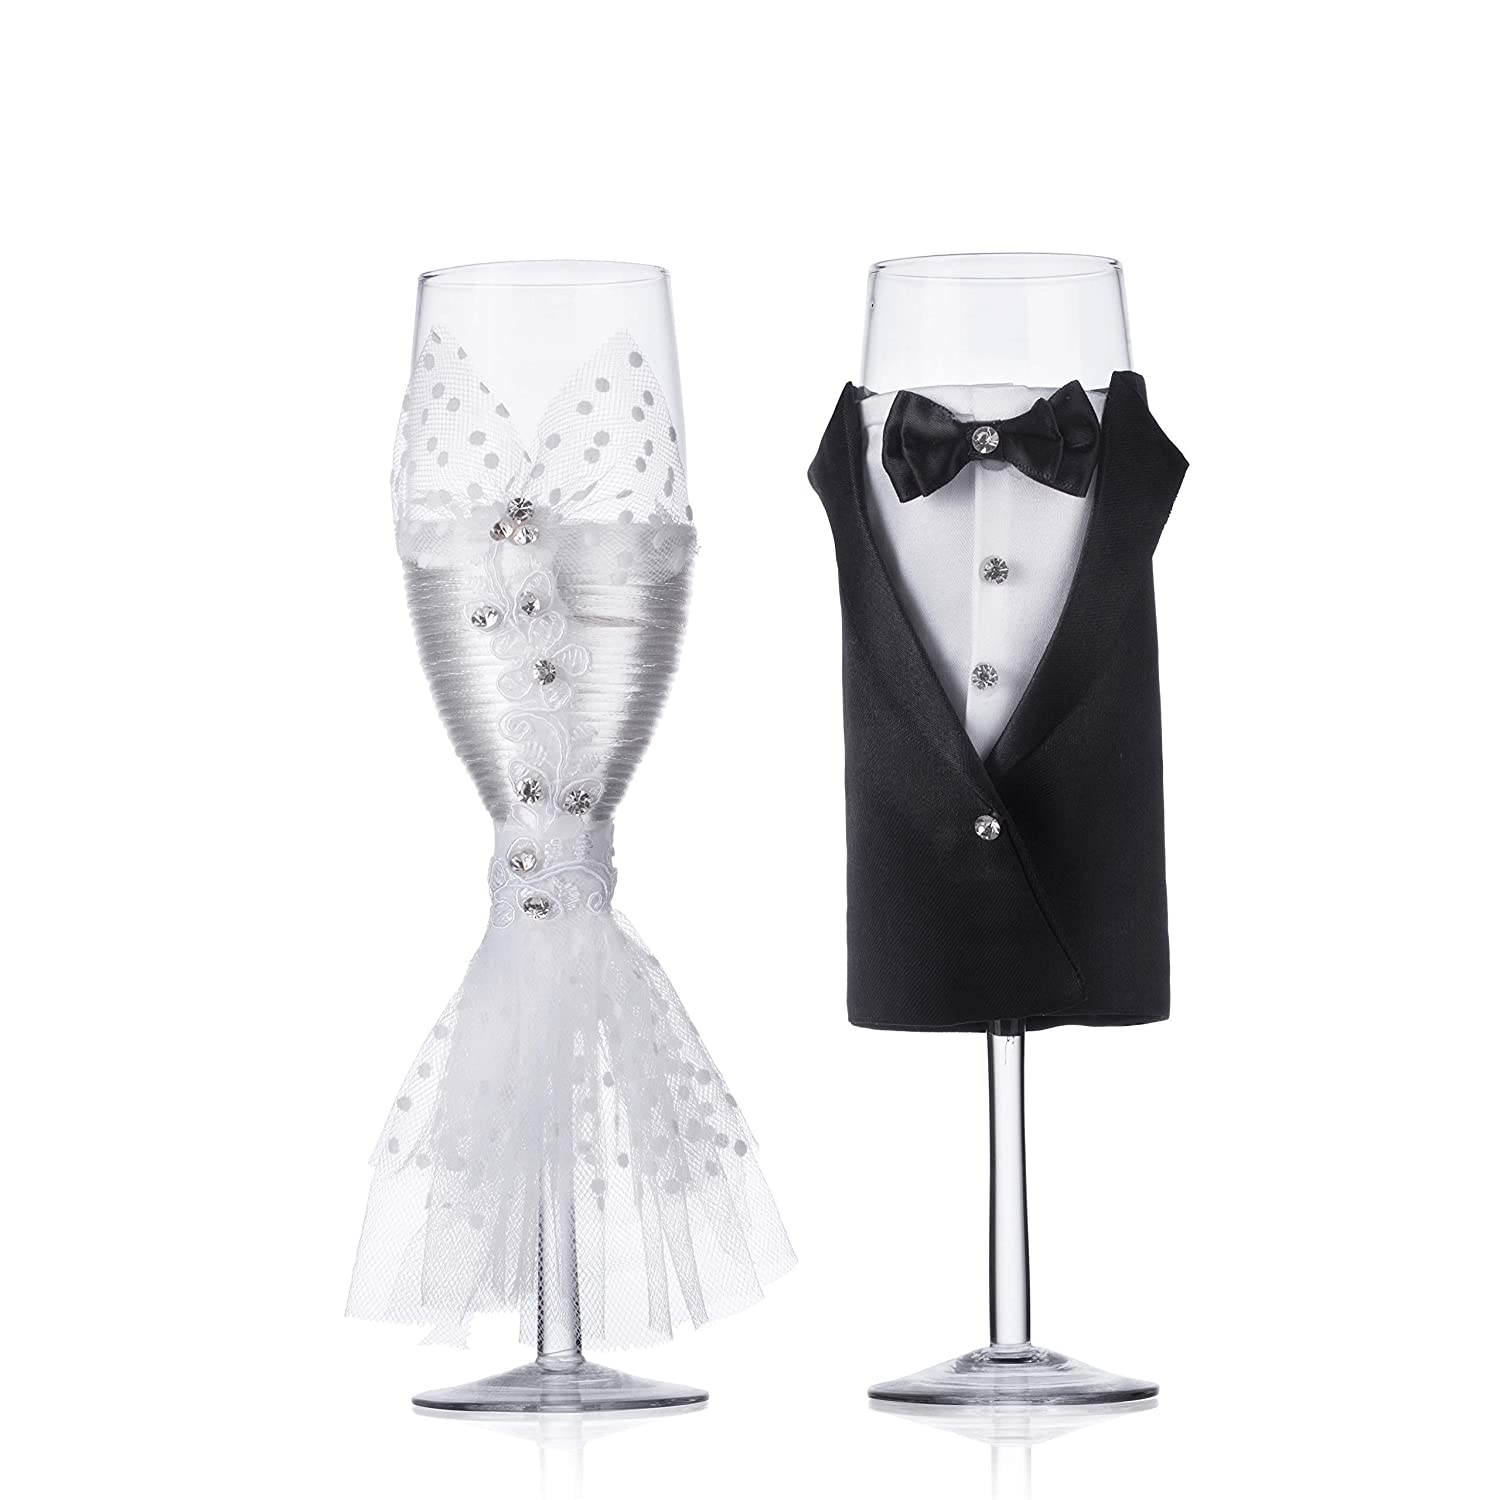 set of 2 Wedding Tuxedo Dress Wine Glasses-ULA Handmade Bride and Groom Champagne Flutes for Toasting,Wedding Gifts,Bridal Shower Gifts,Wedding Favors,Couples Gifts,Wedding Decorations